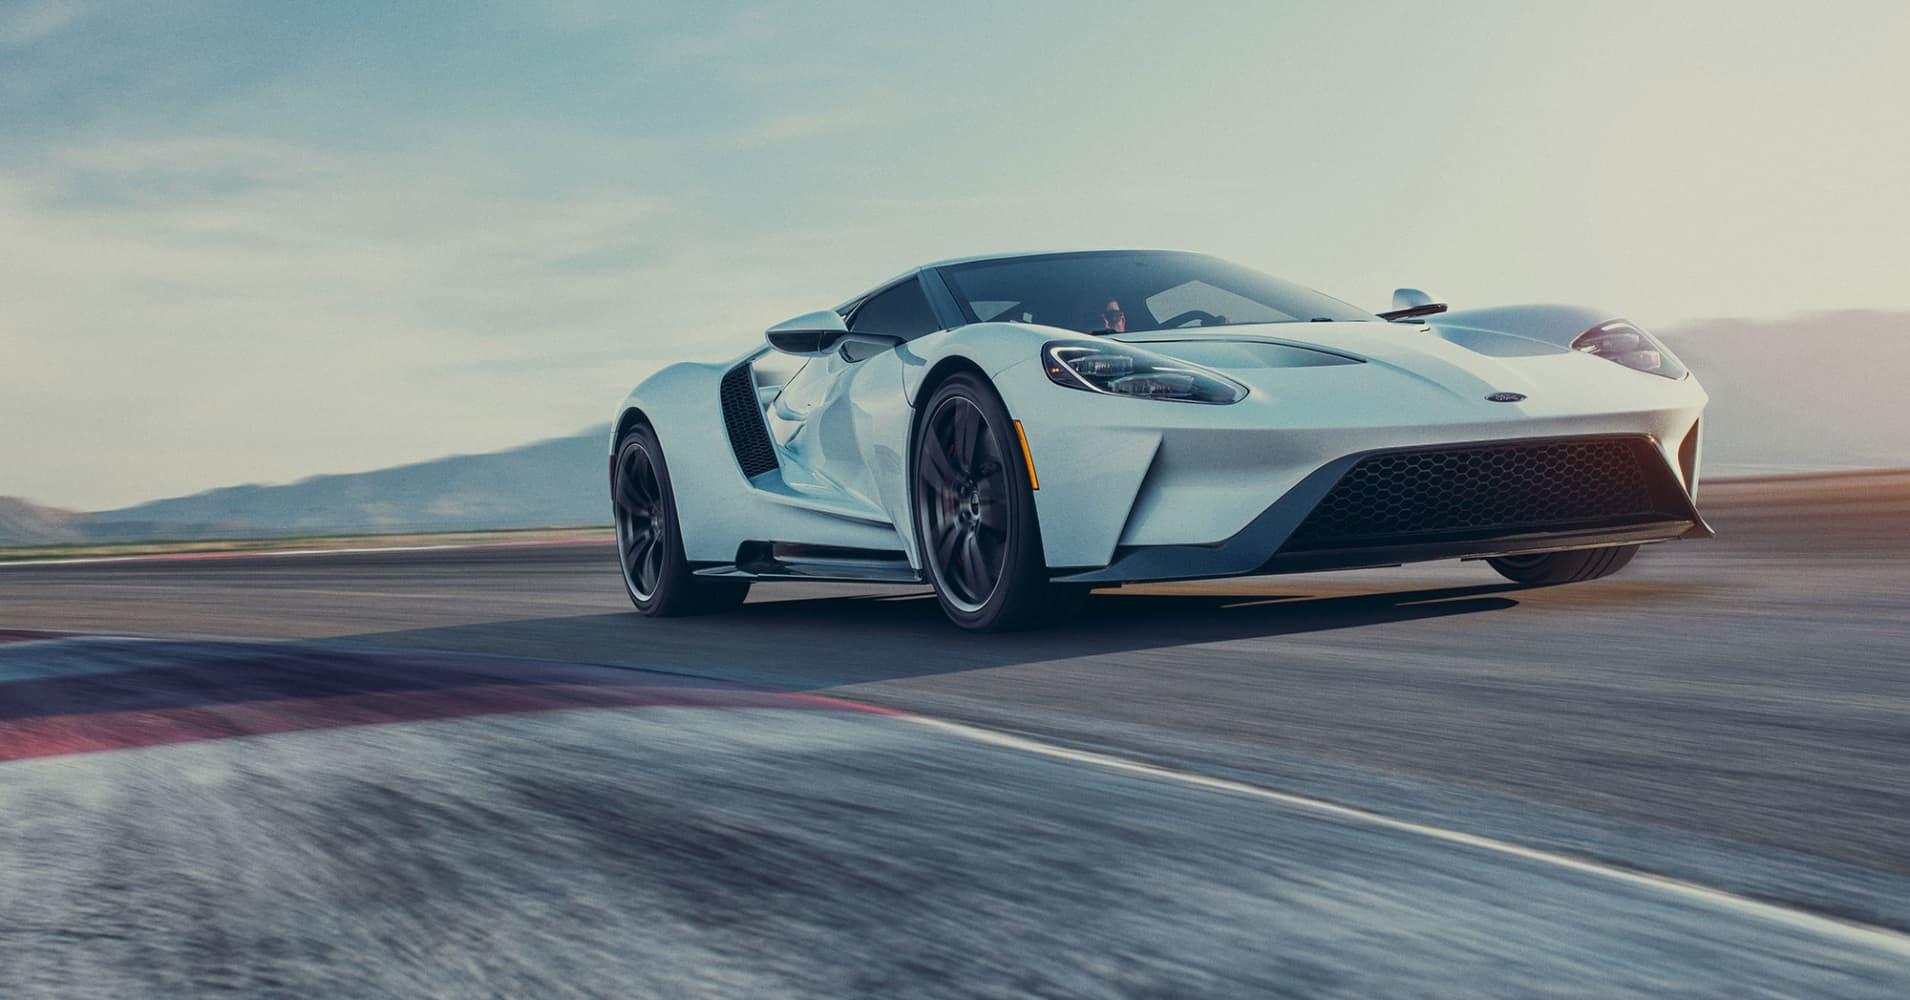 Ford boosts production of its $400,000 GT supercar as demand outpaces supply six-to-one